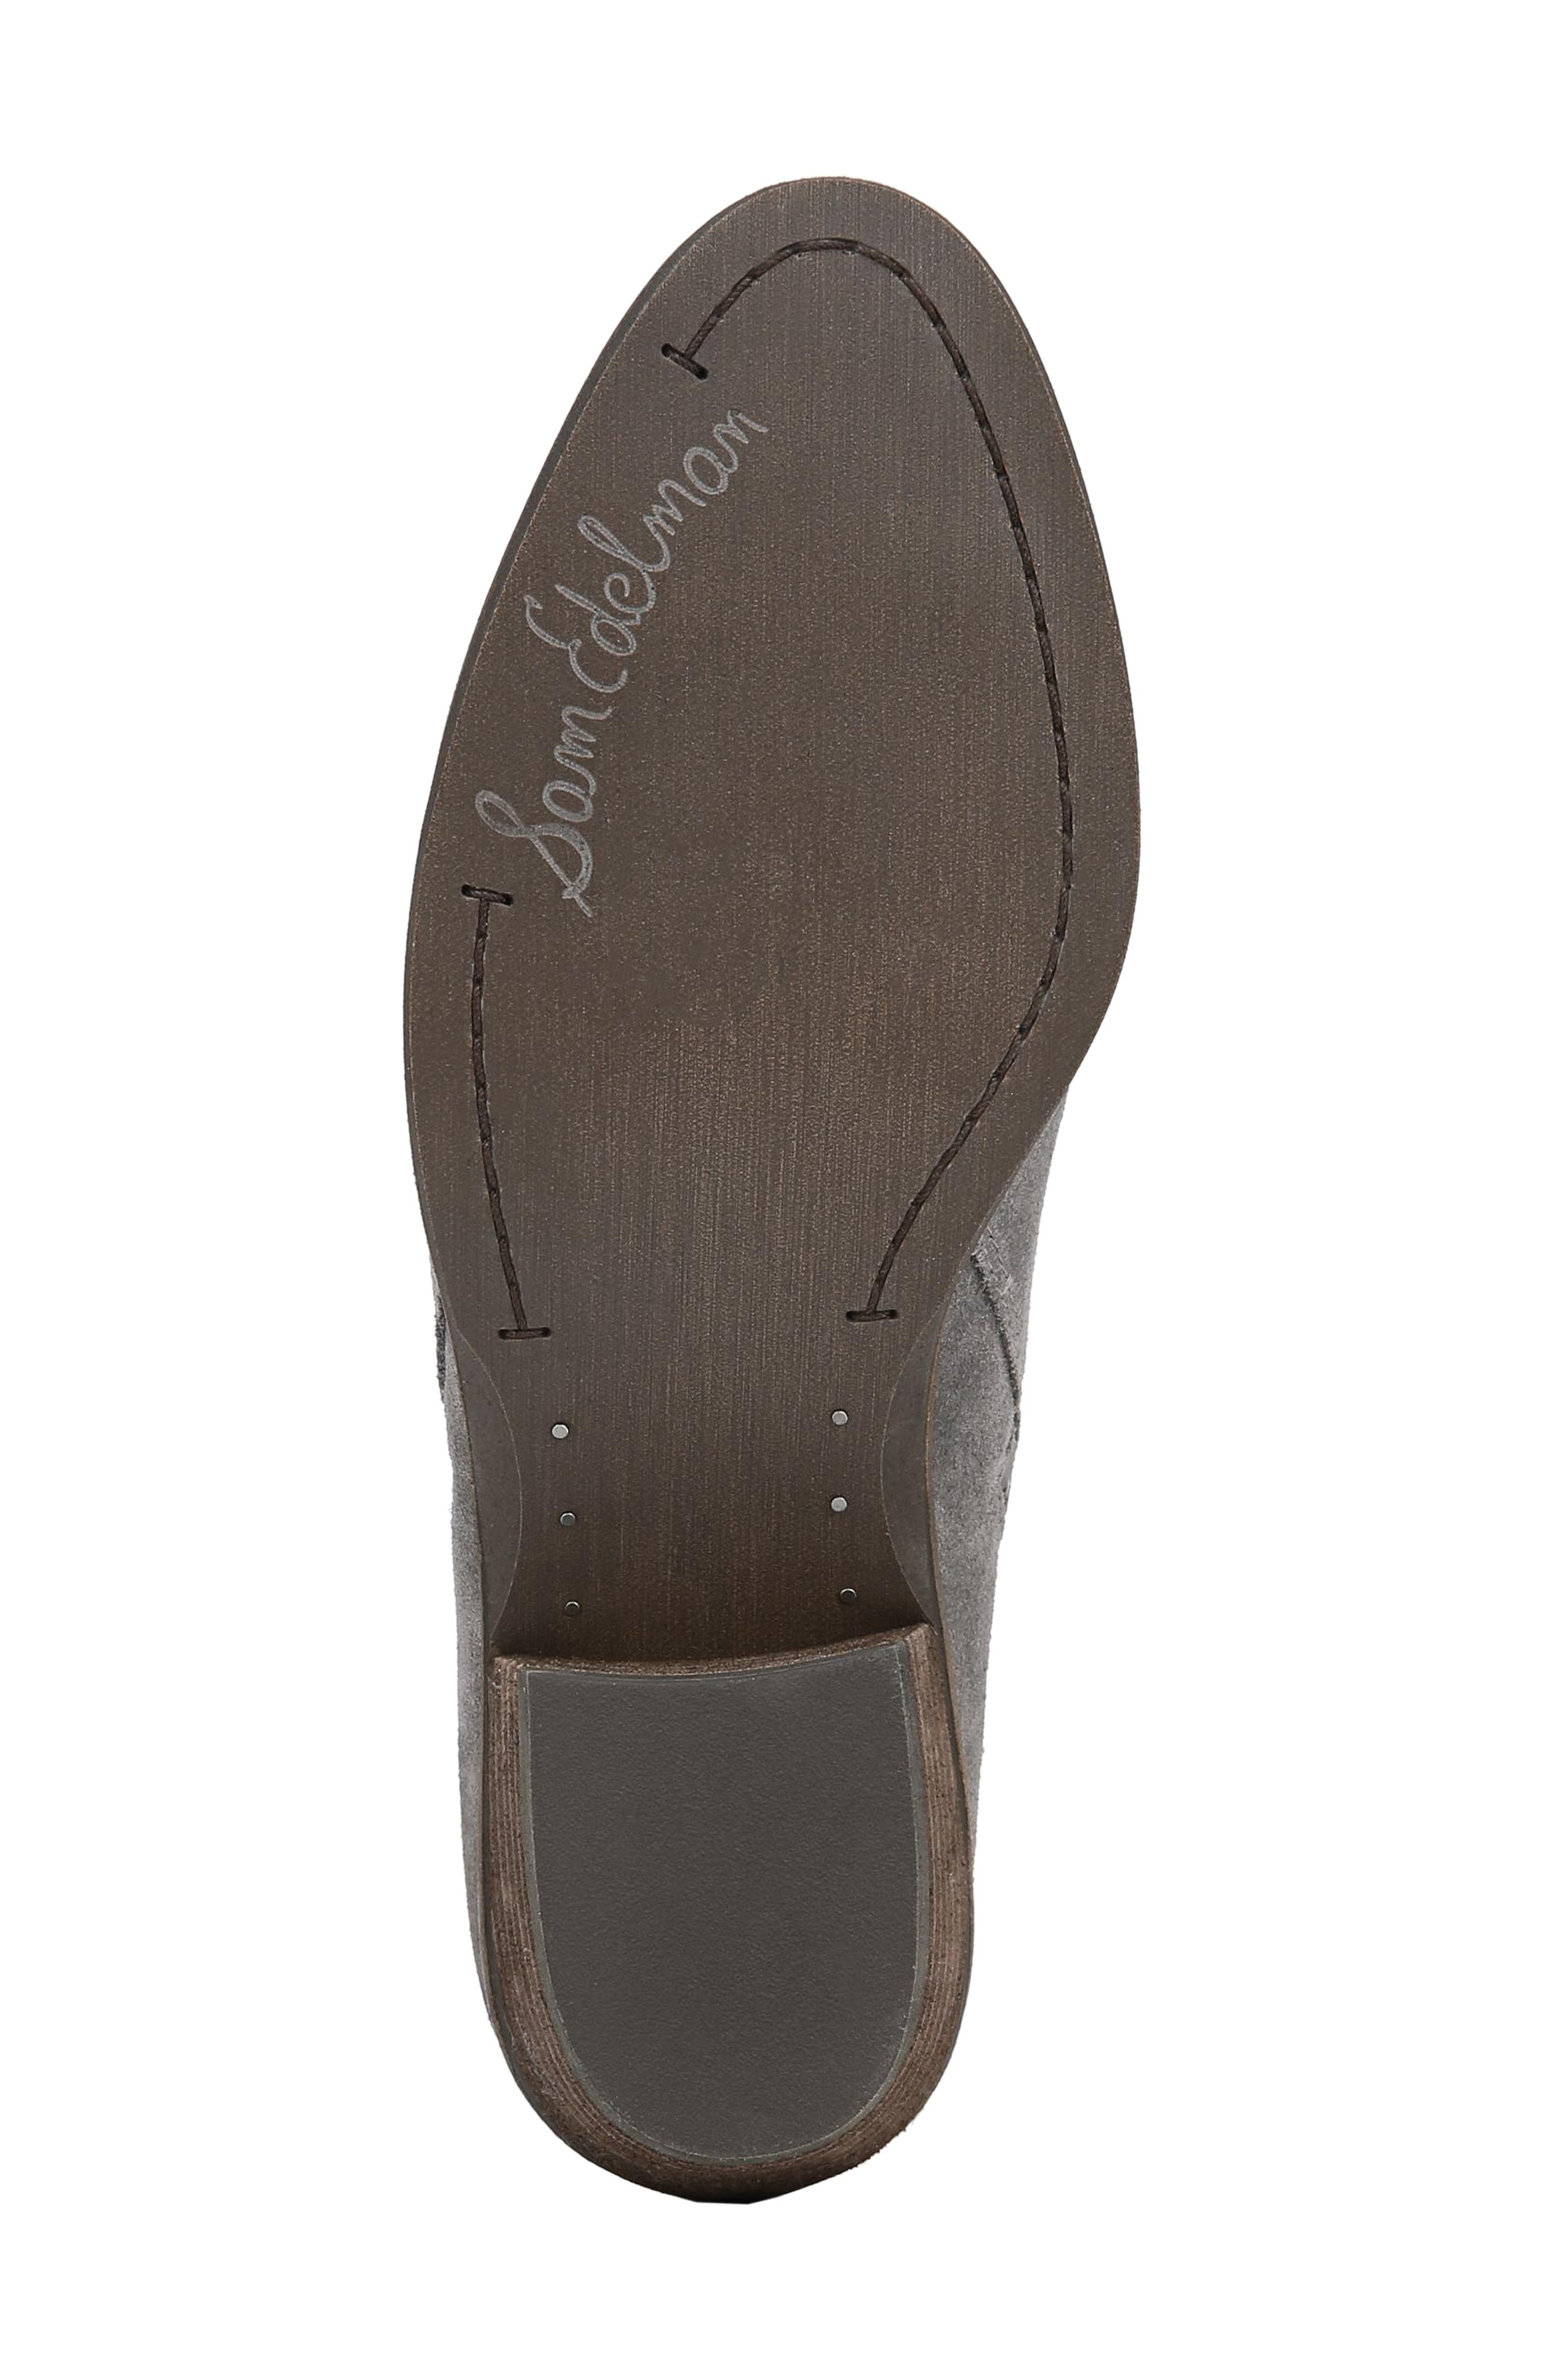 Packer Bootie,                             Alternate thumbnail 6, color,                             STEEL GREY SUEDE LEATHER